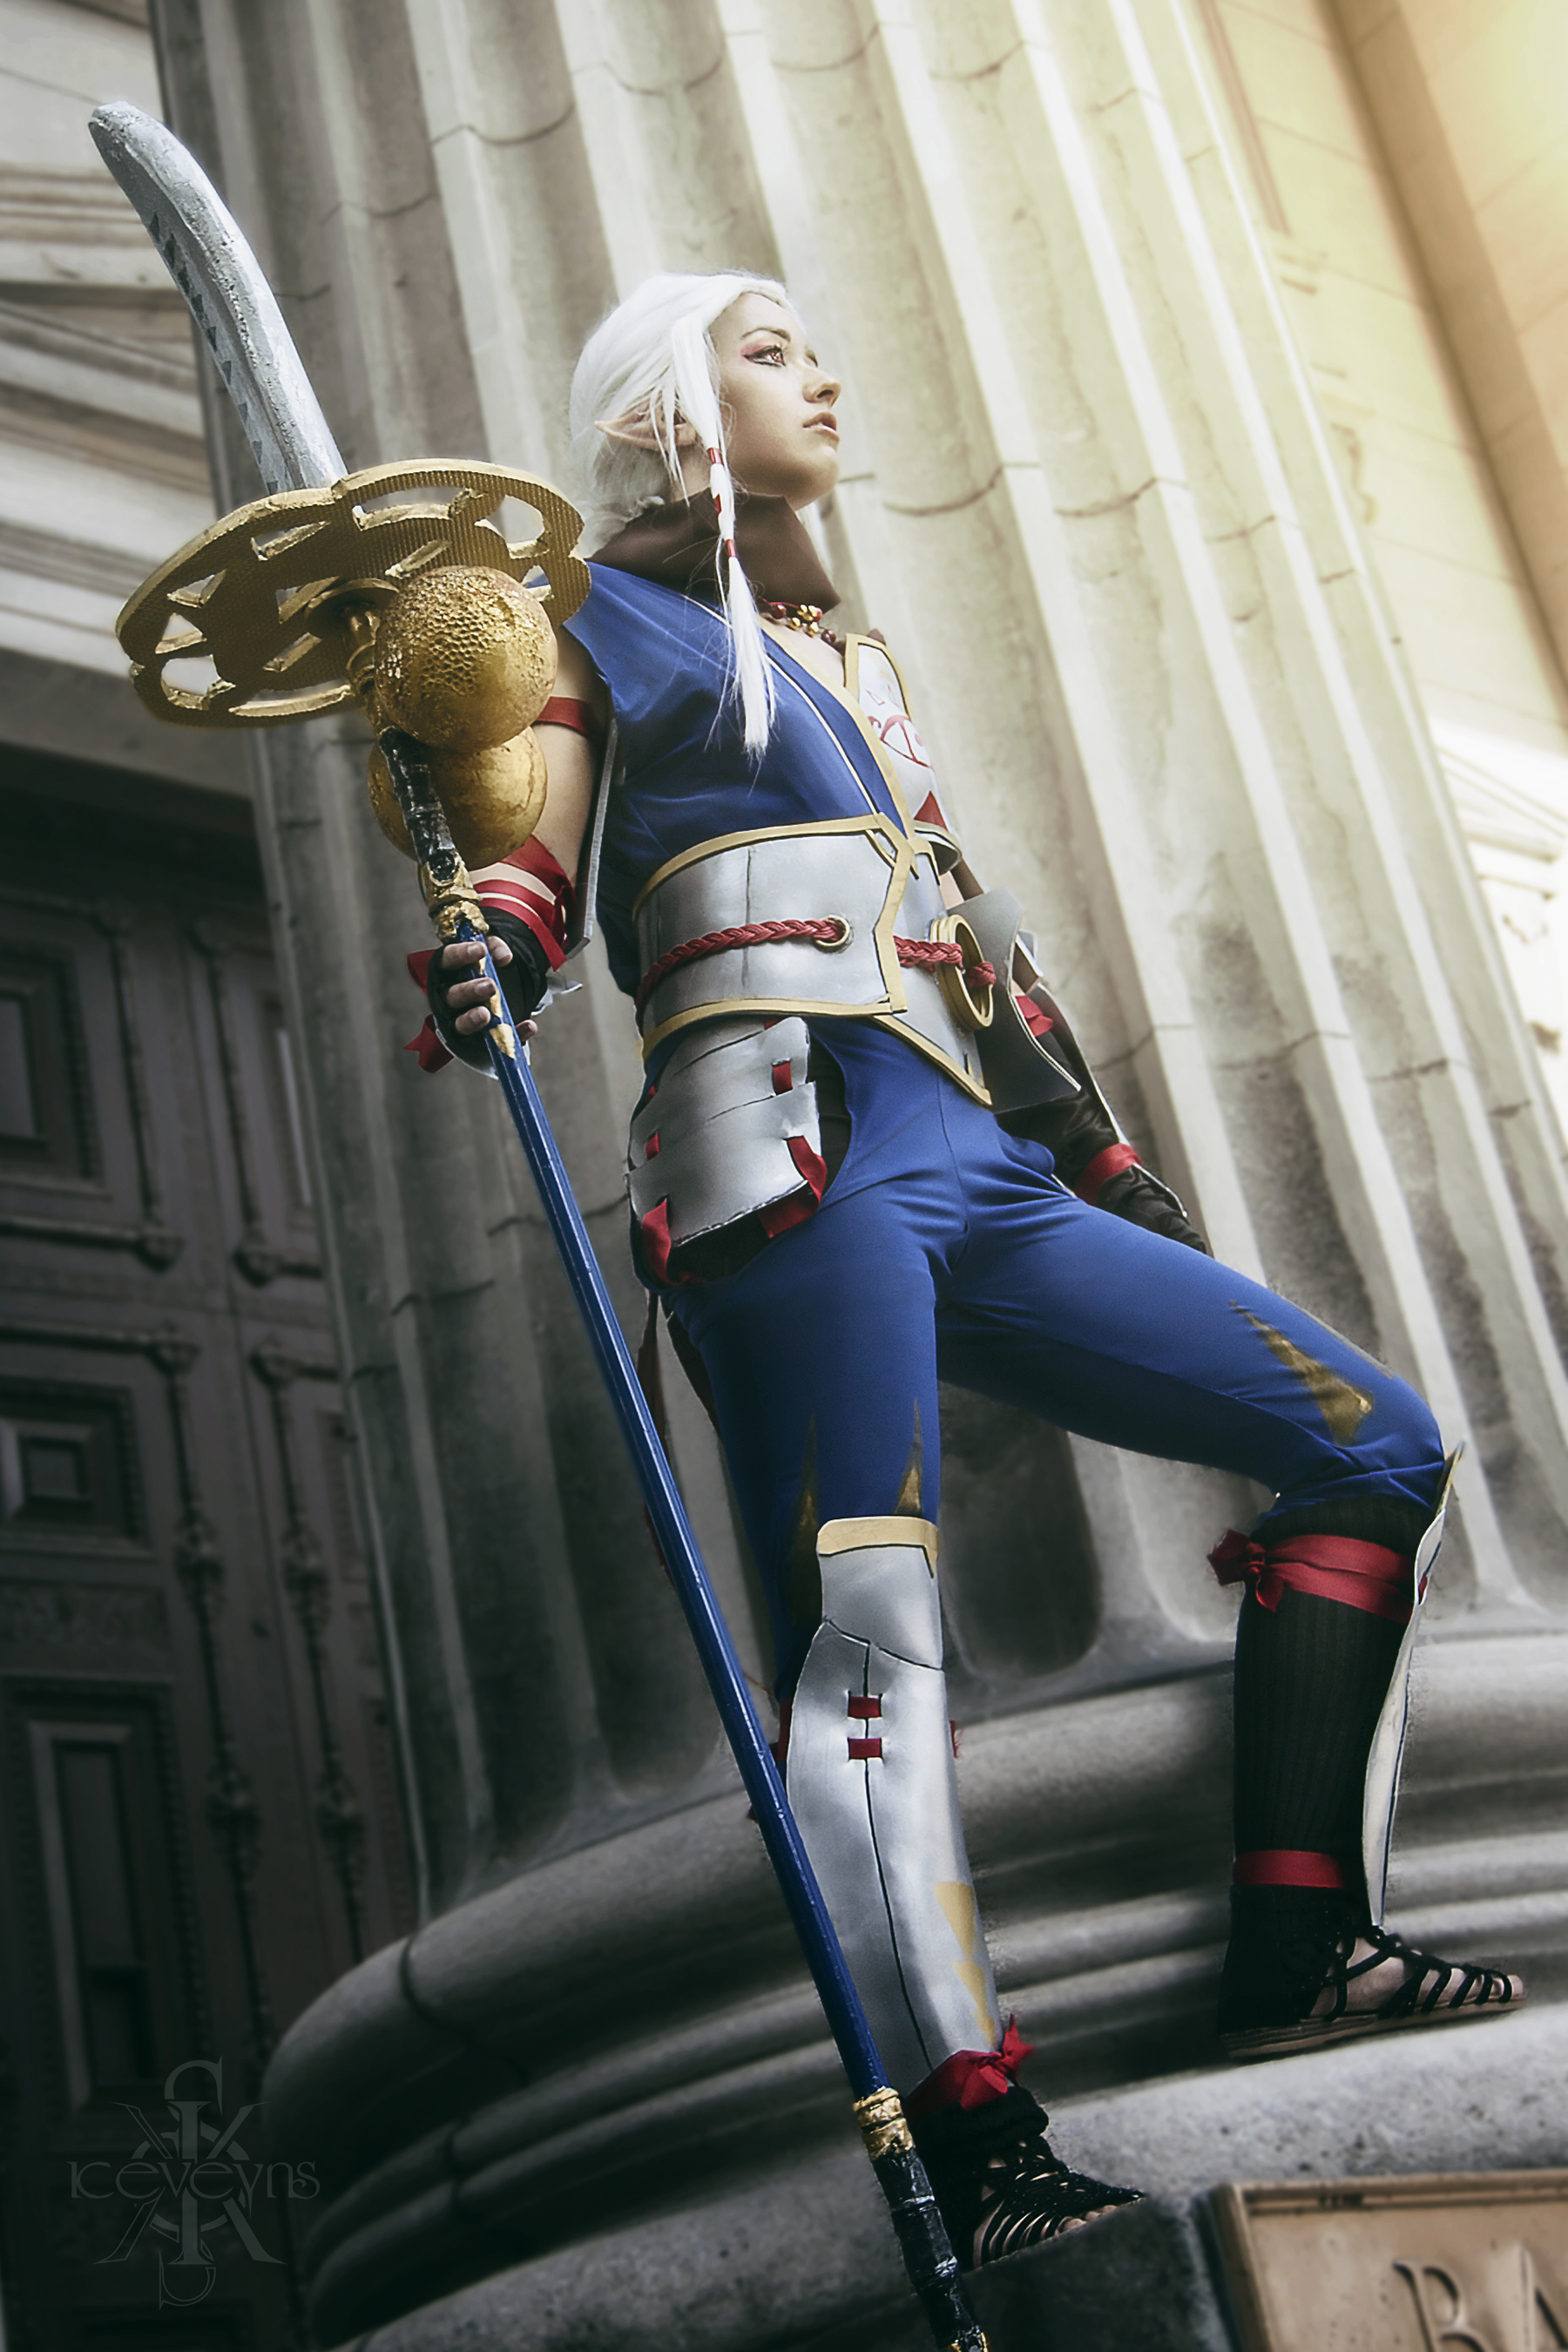 Impa 1 Hyrule Warriors Sold By Emykitteh S Cosplay Shop On Storenvy